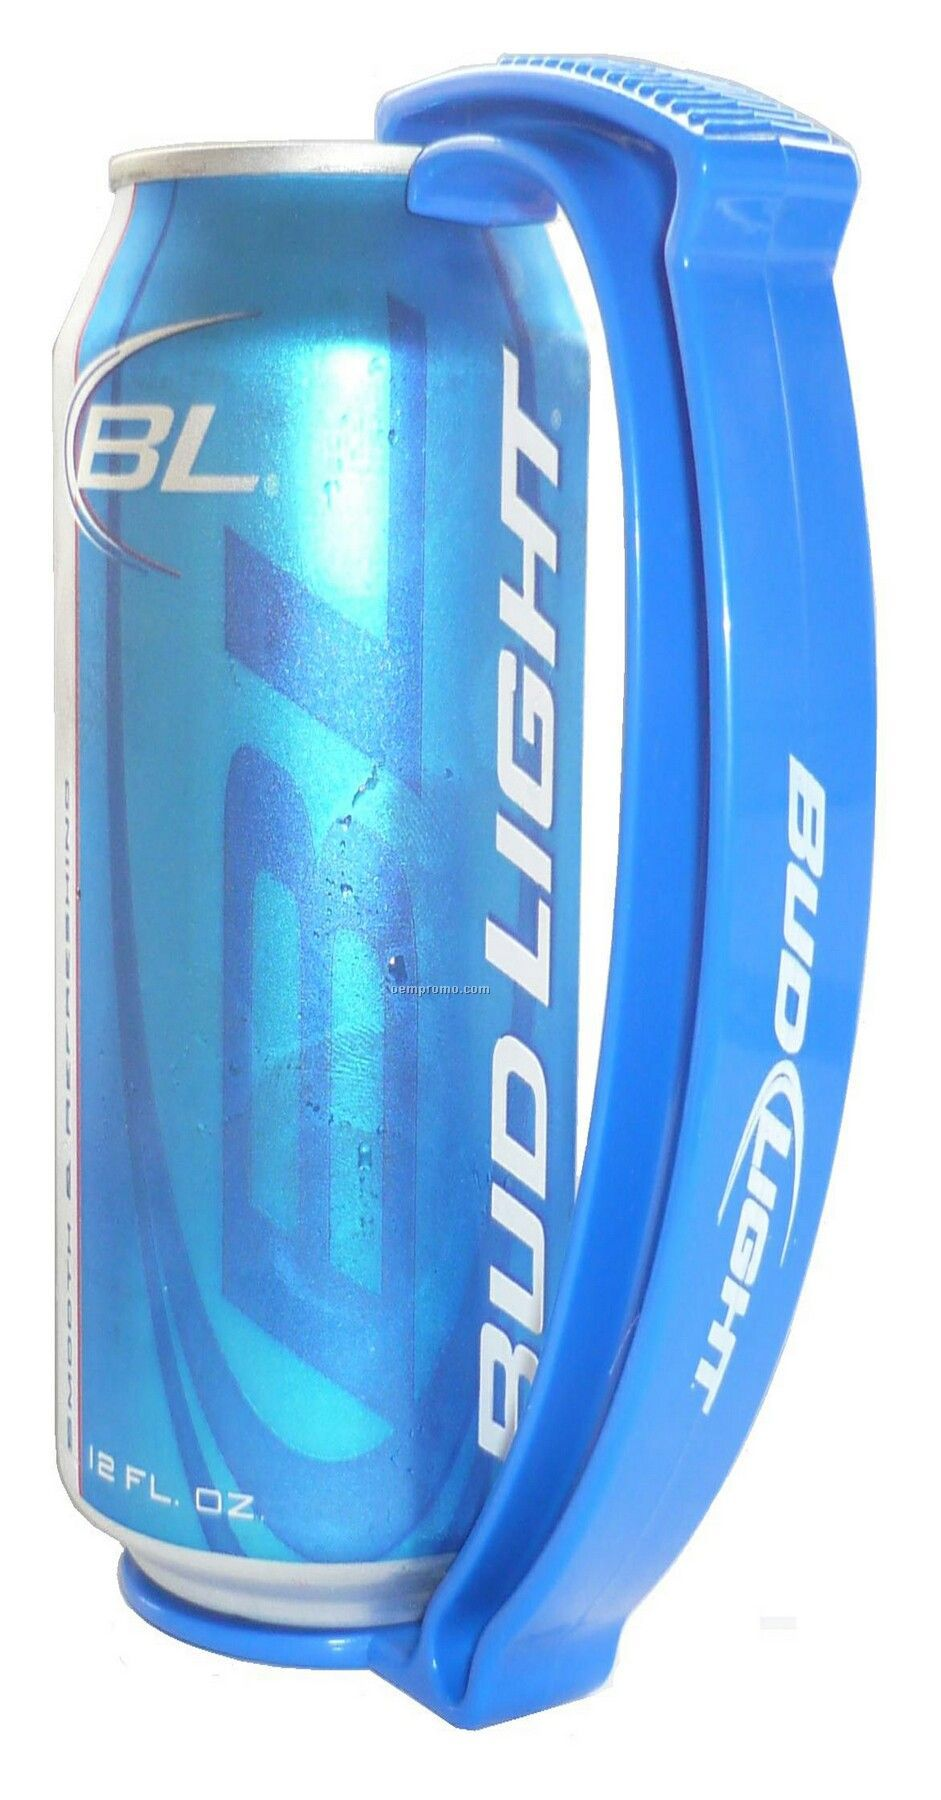 16 Oz. The Can Grip